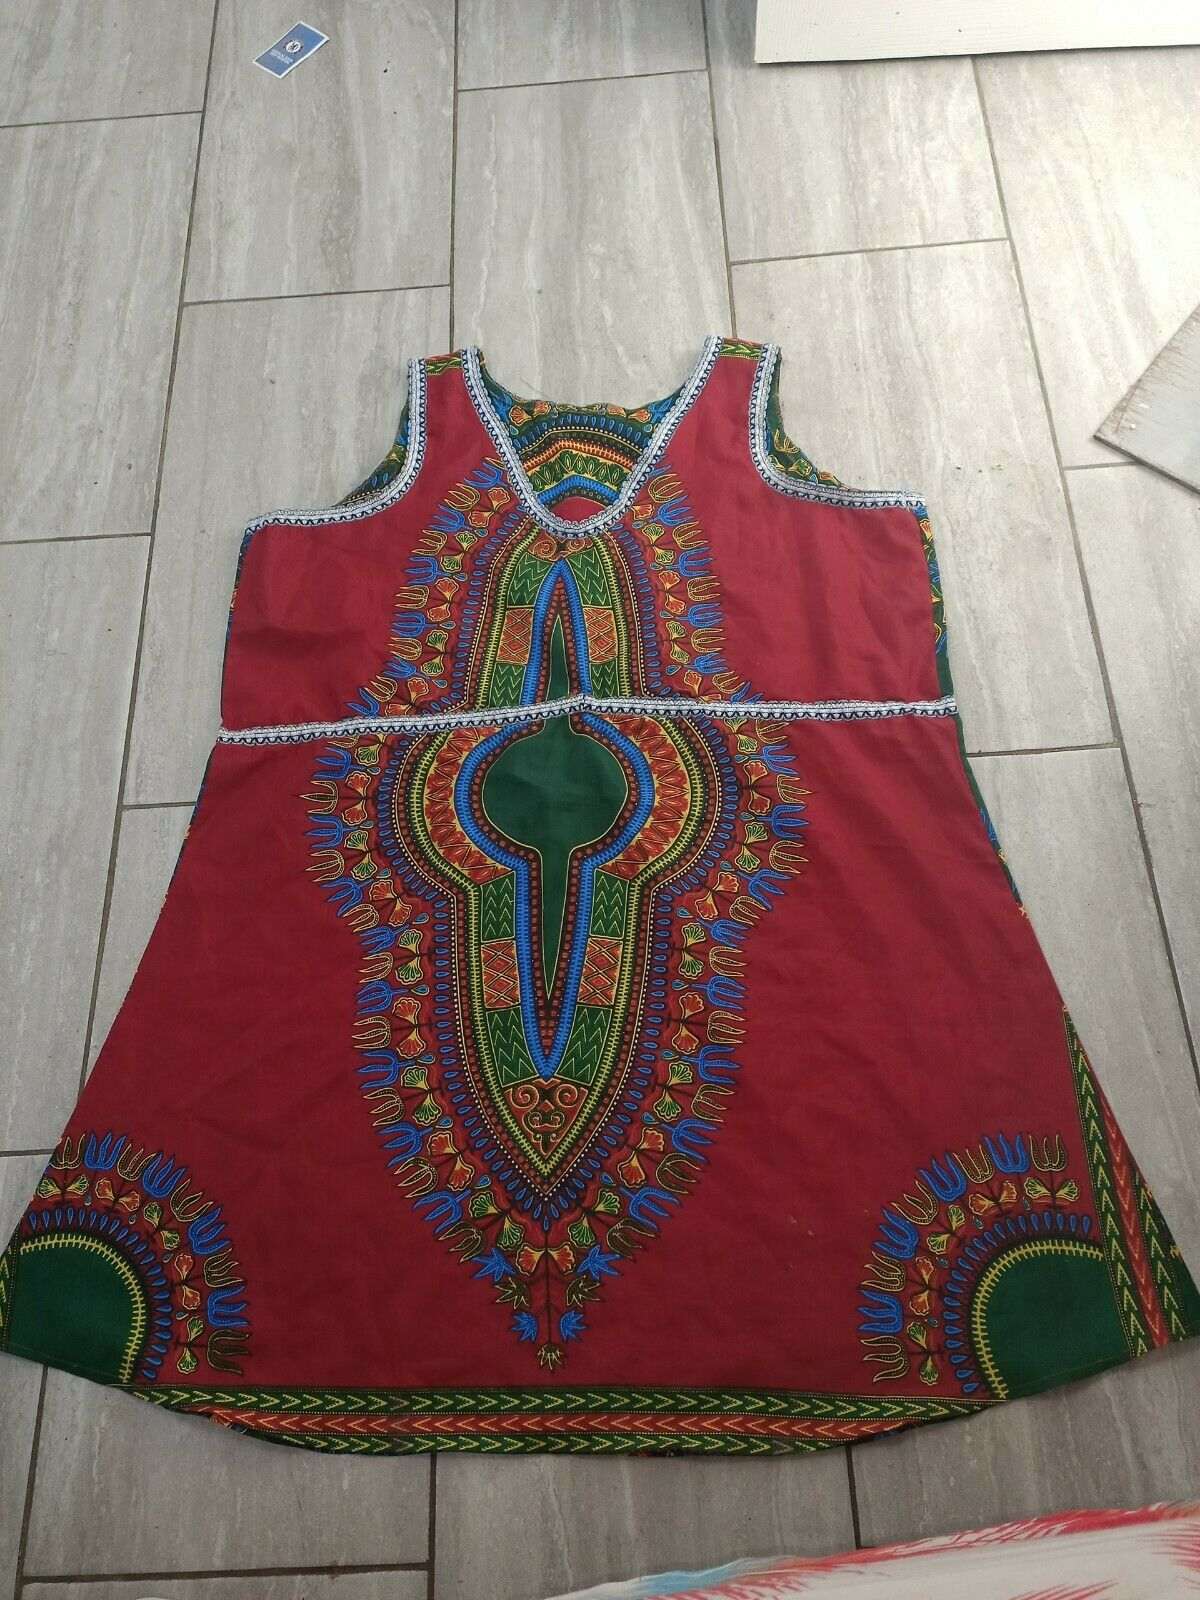 Ladies dress in African print material free size plus size fit chest up to 52Rin